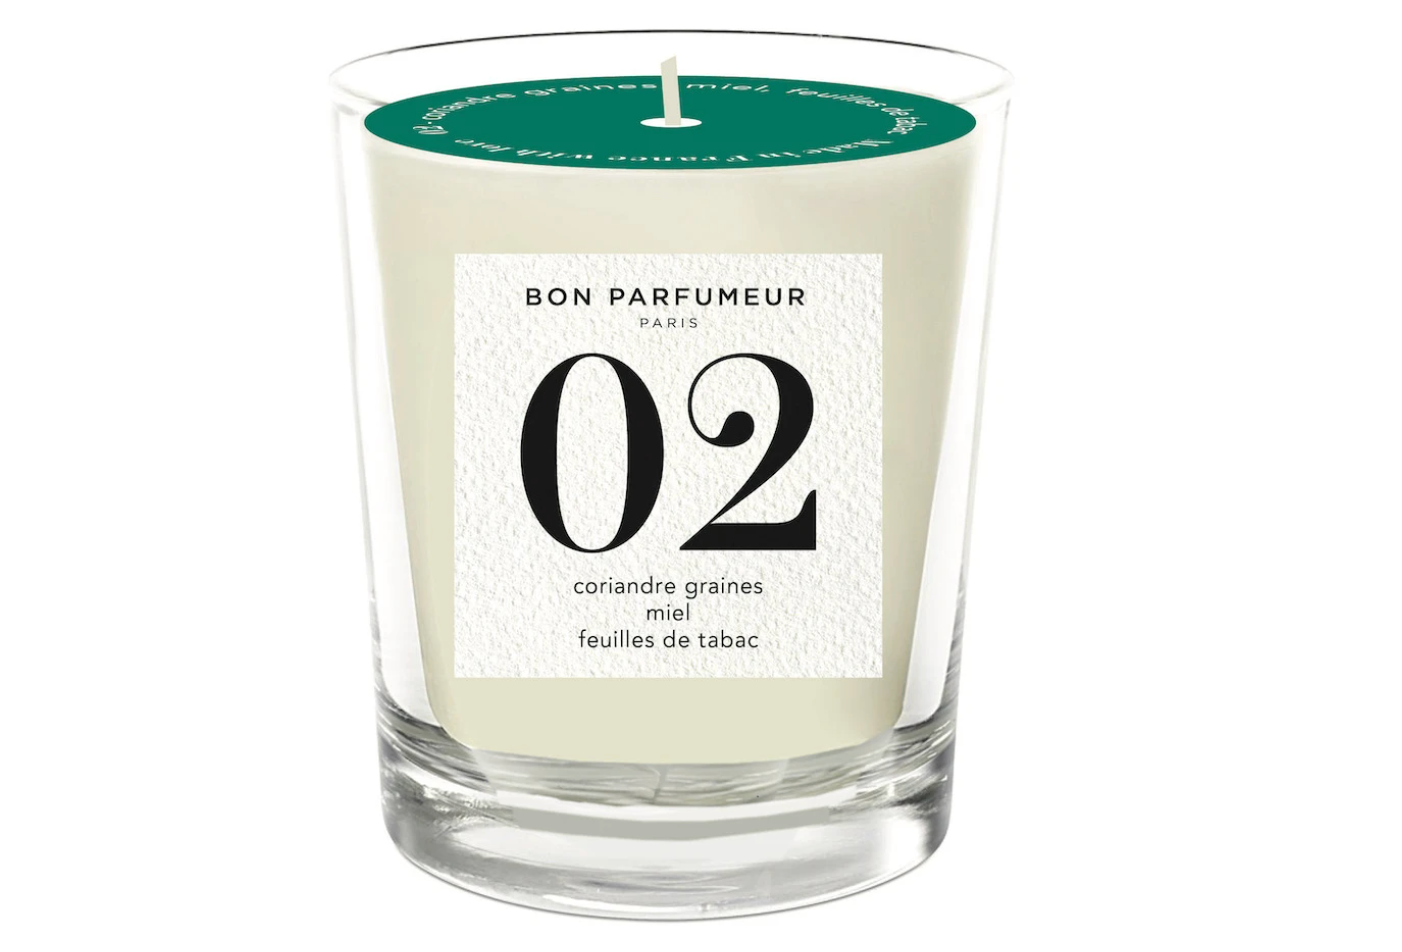 BON PARFUMEUR Candle 02: coriander seed, honey, tobacco leaf